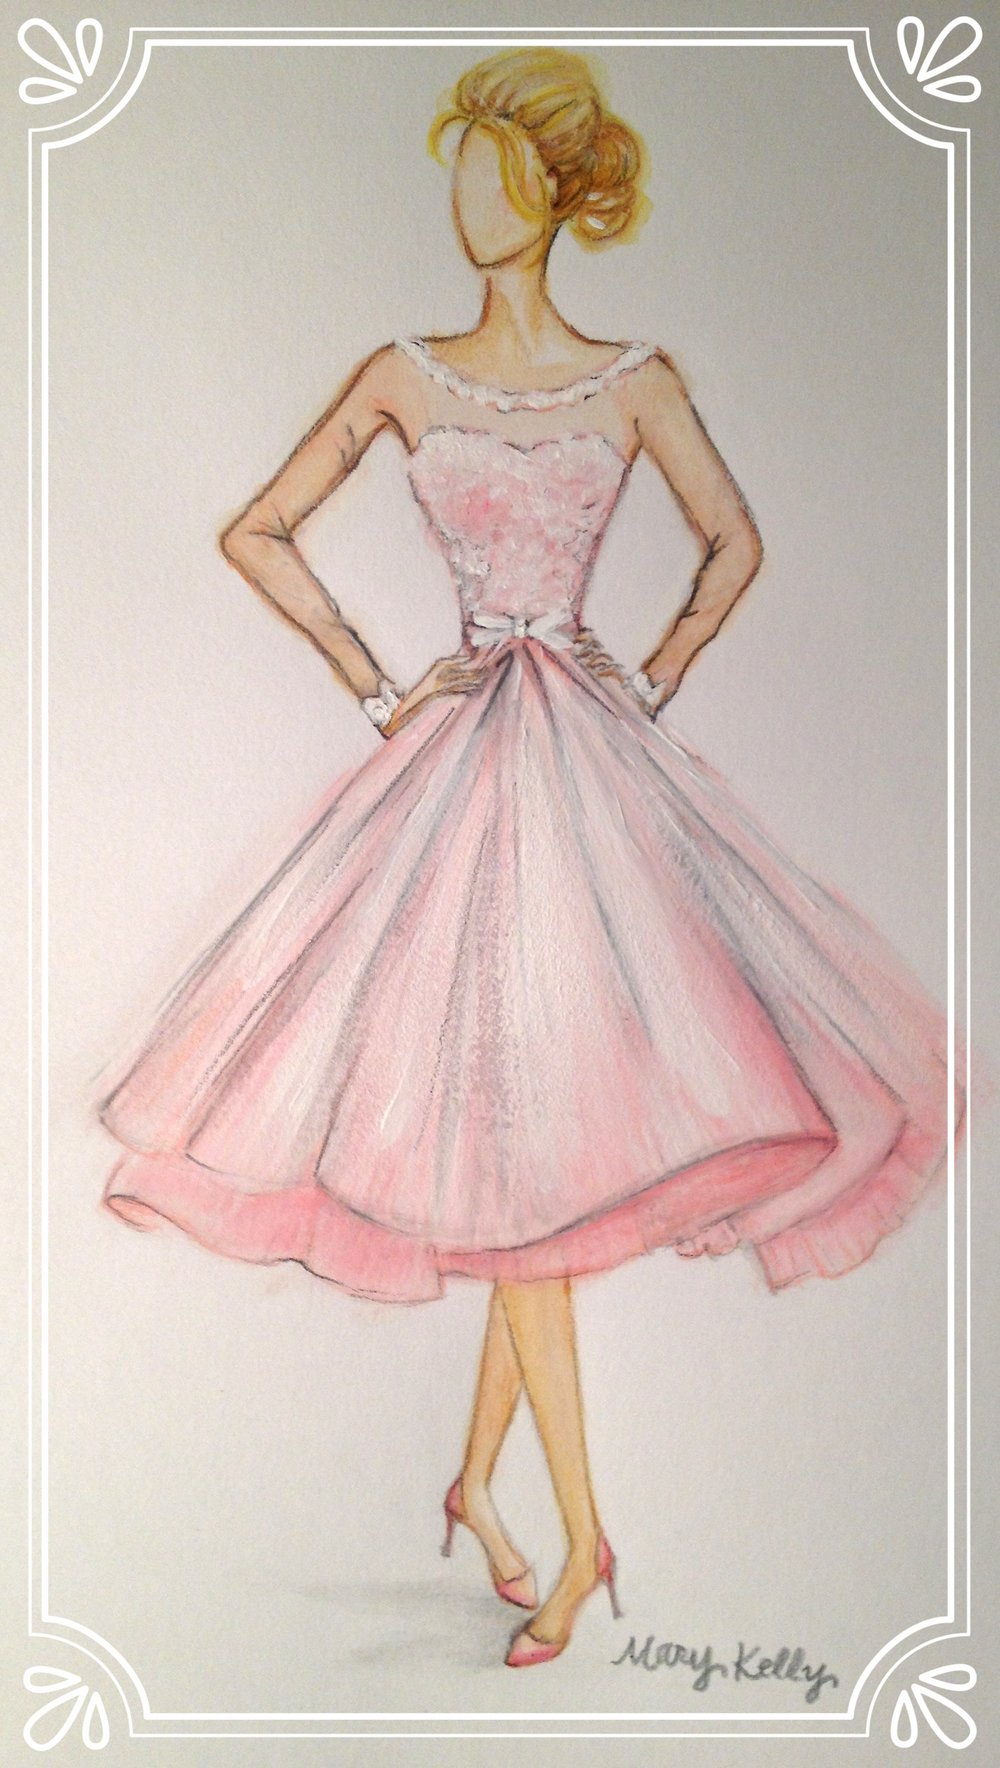 short pink dress, mary kelly designs © 2017